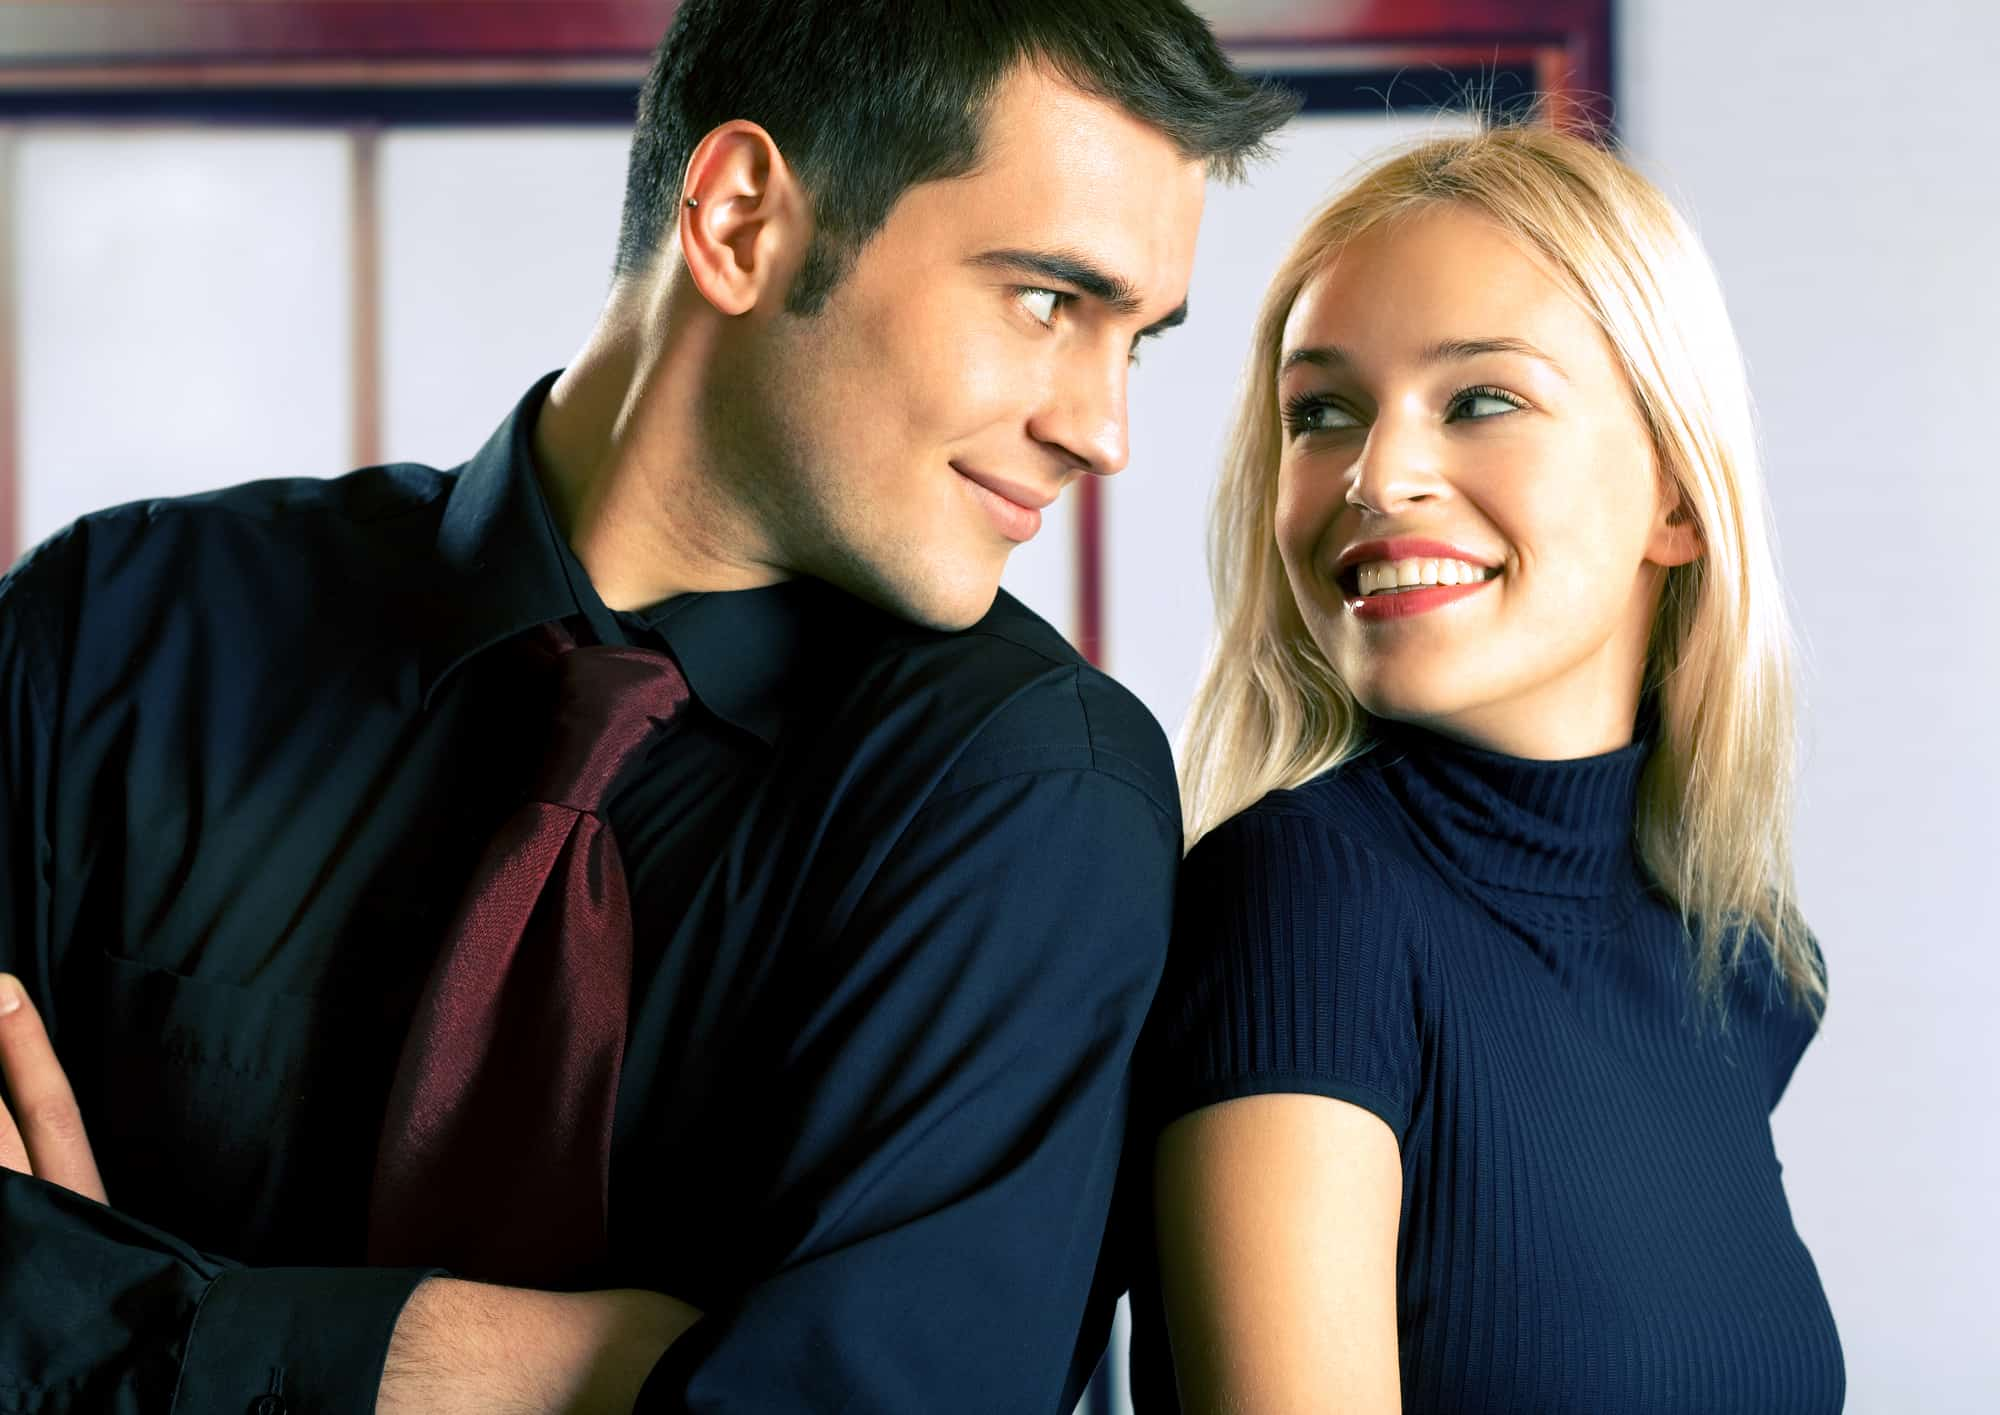 Reading Mens Body Language Of Attraction (37 Striking